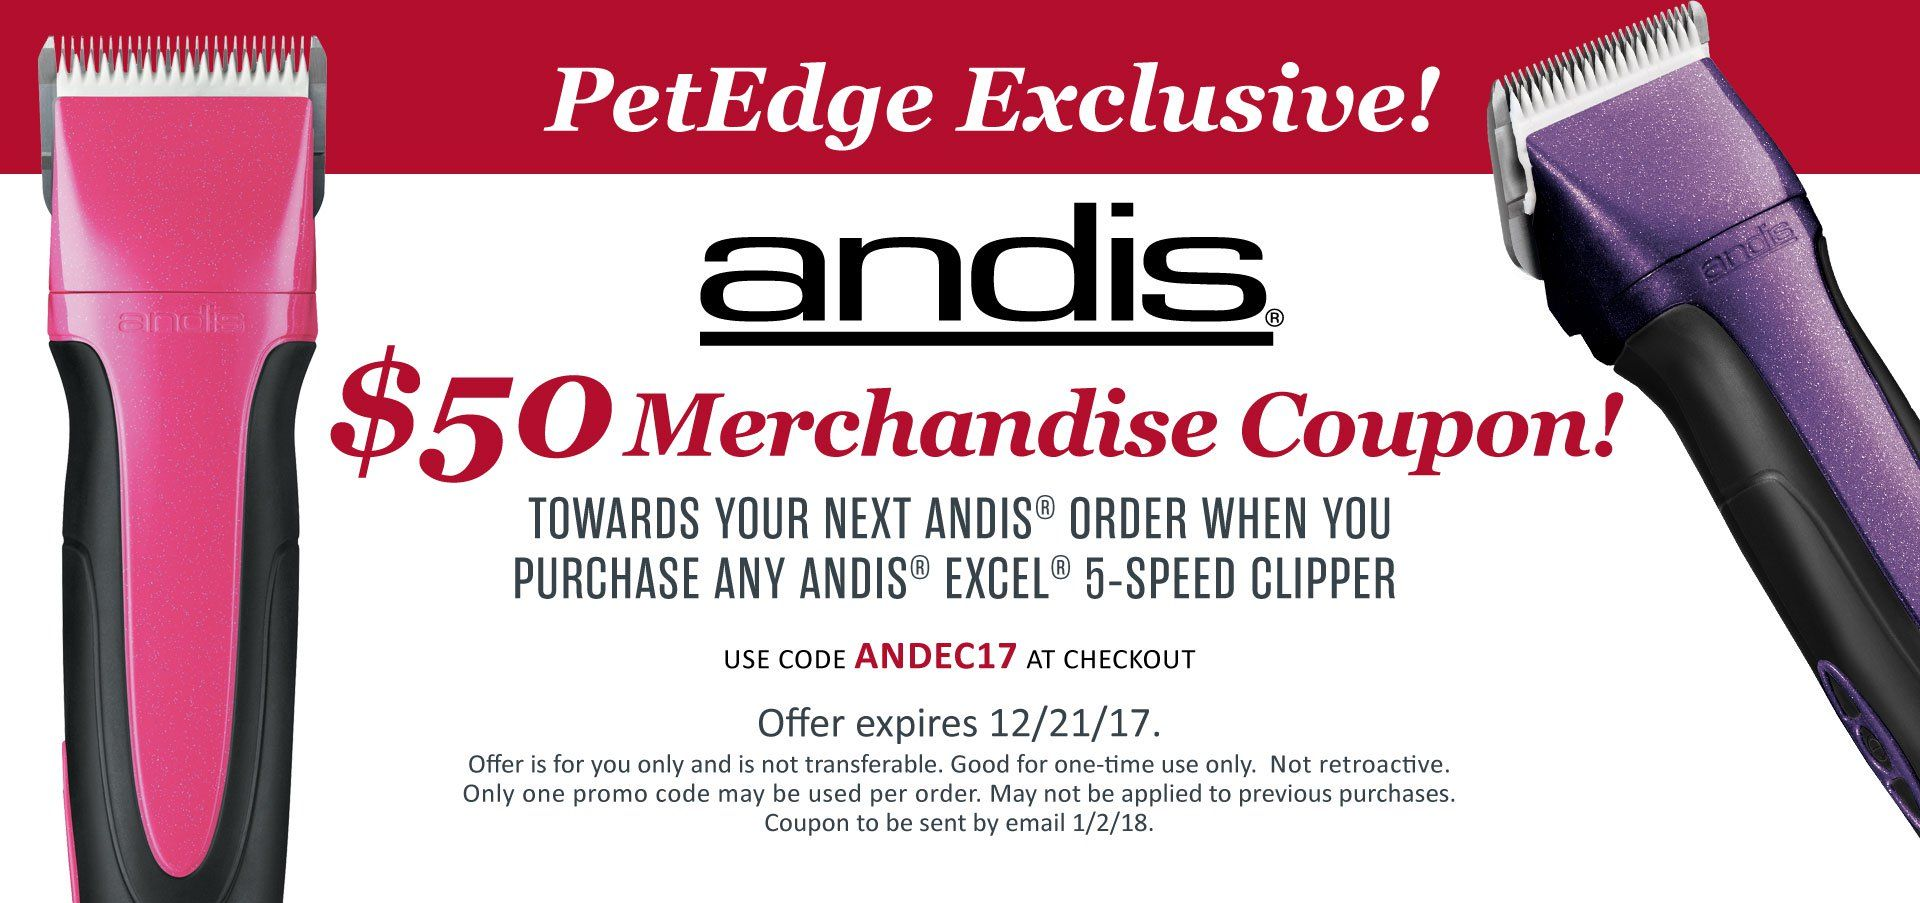 Andis 50 Merchandise Coupon Dog Grooming Pet Supplies Grooming